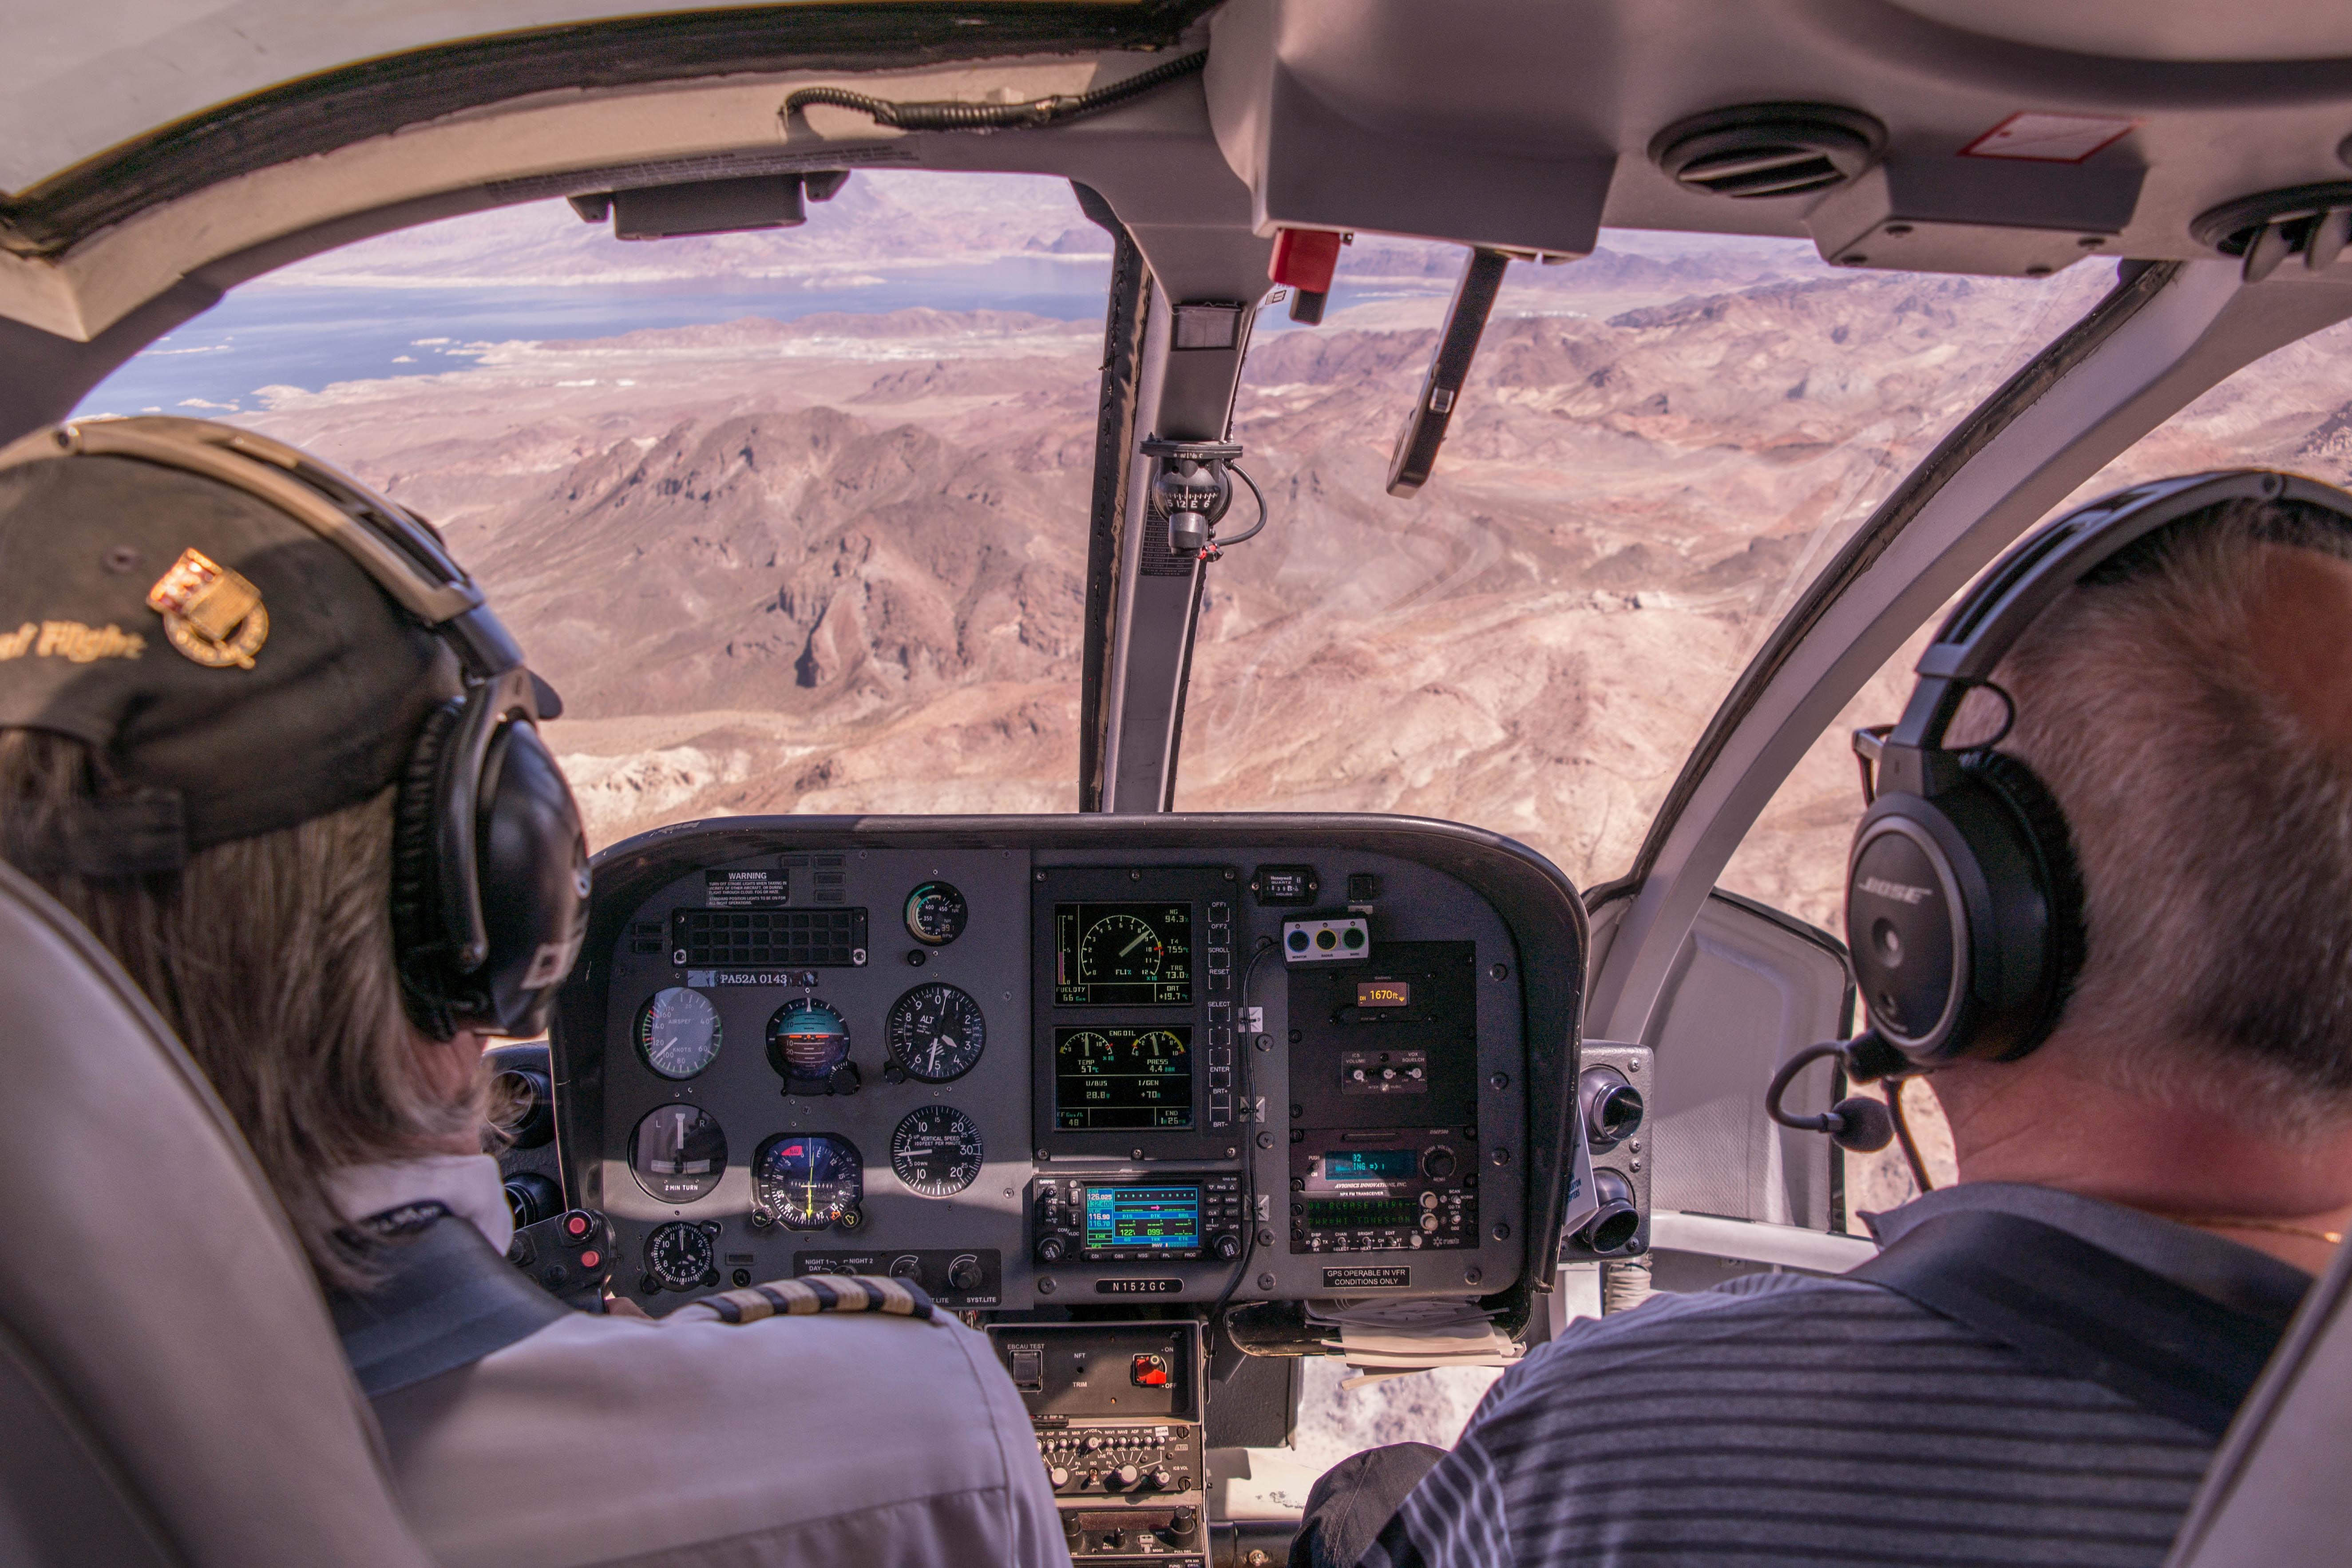 two person riding plane near mountains during daytime